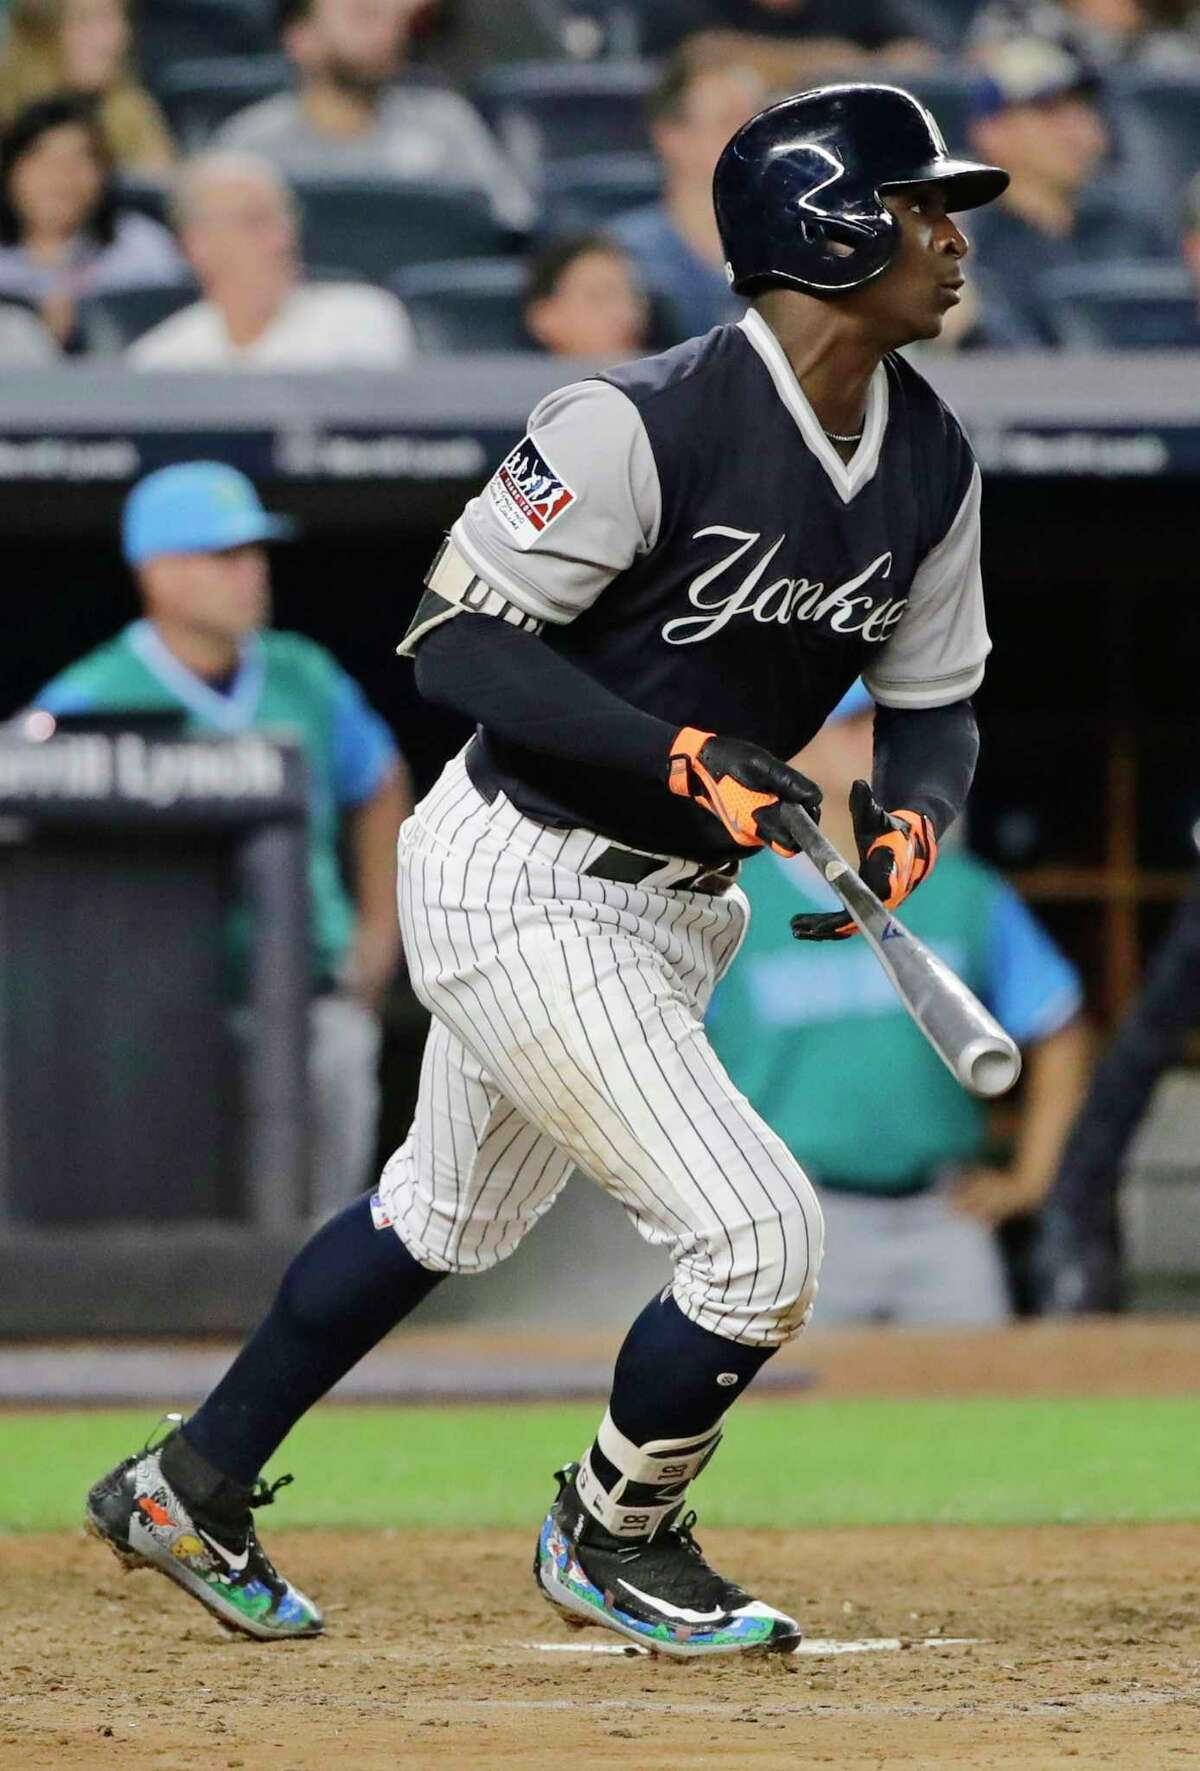 New York Yankees' Didi Gregorius watches his RBI double during the eighth inning of a baseball game against the Seattle Mariners on Friday, Aug. 25, 2017, in New York. (AP Photo/Frank Franklin II) ORG XMIT: NYY112